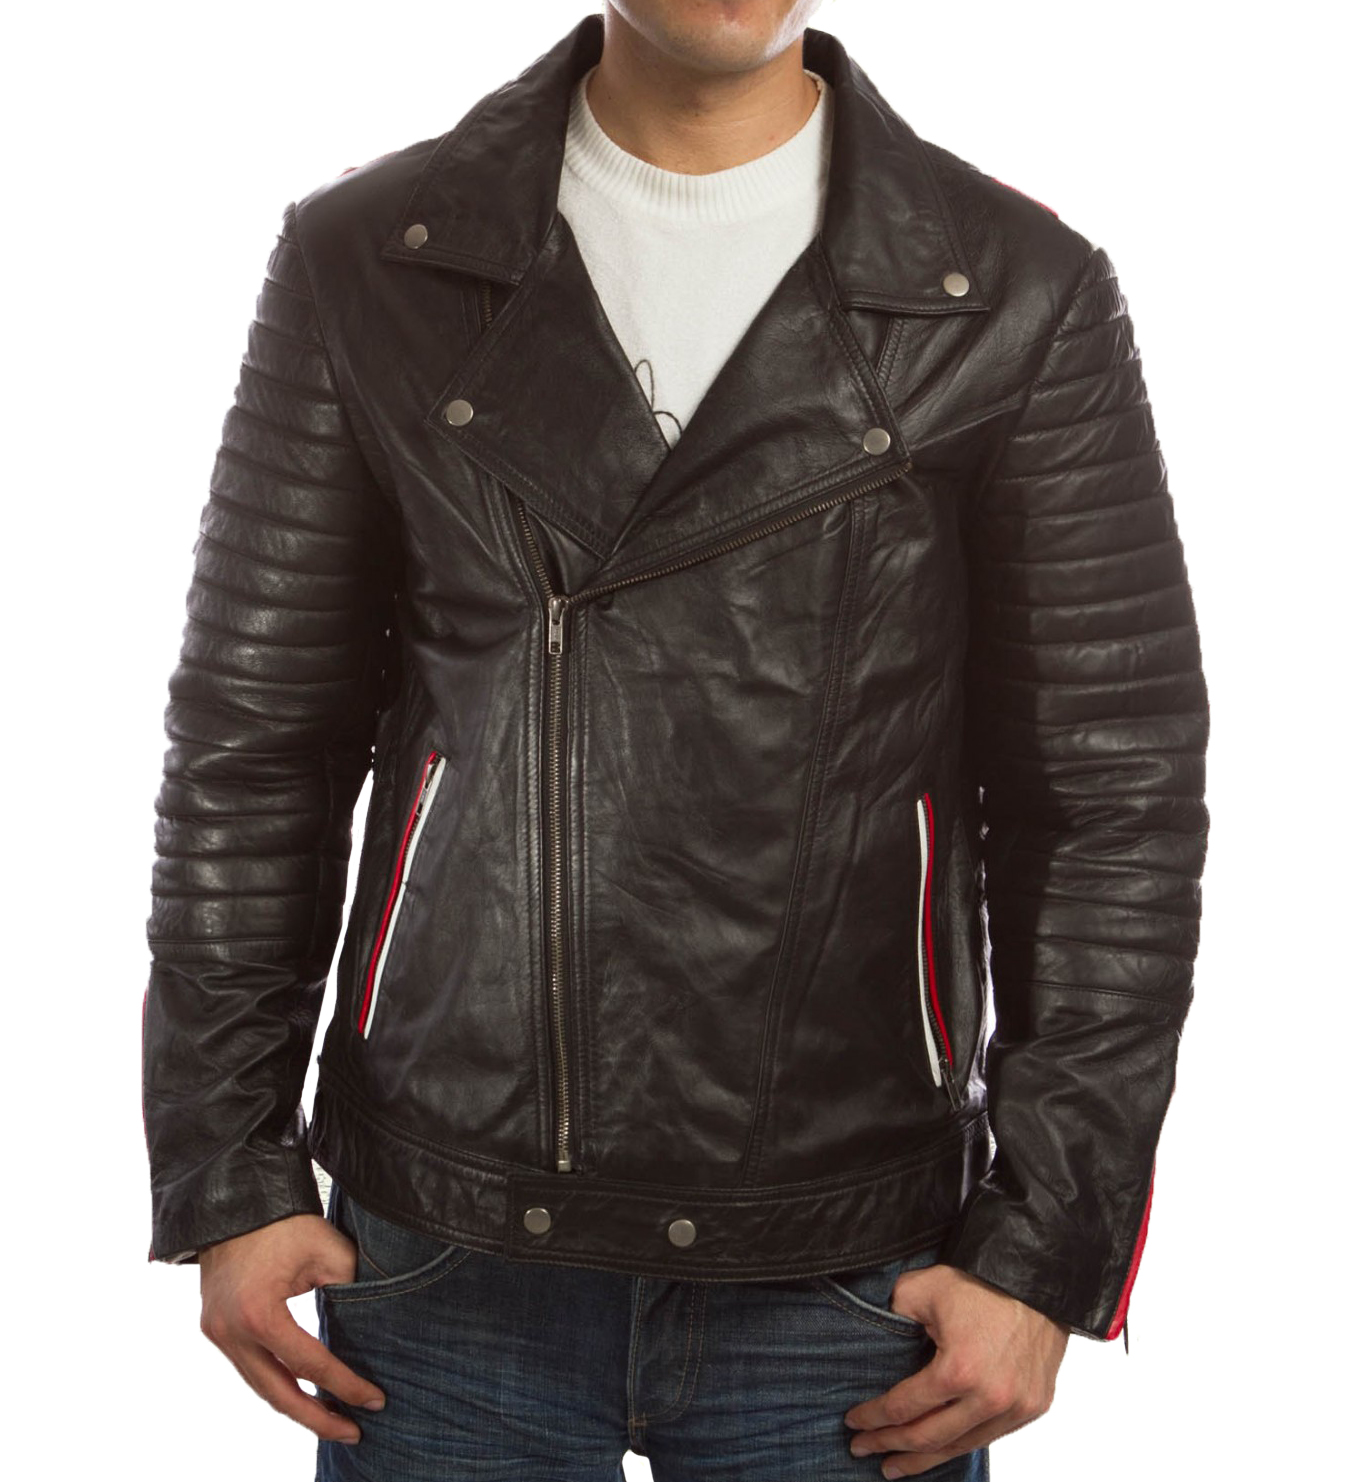 Blue Valentine Ryan Gosling Jacket